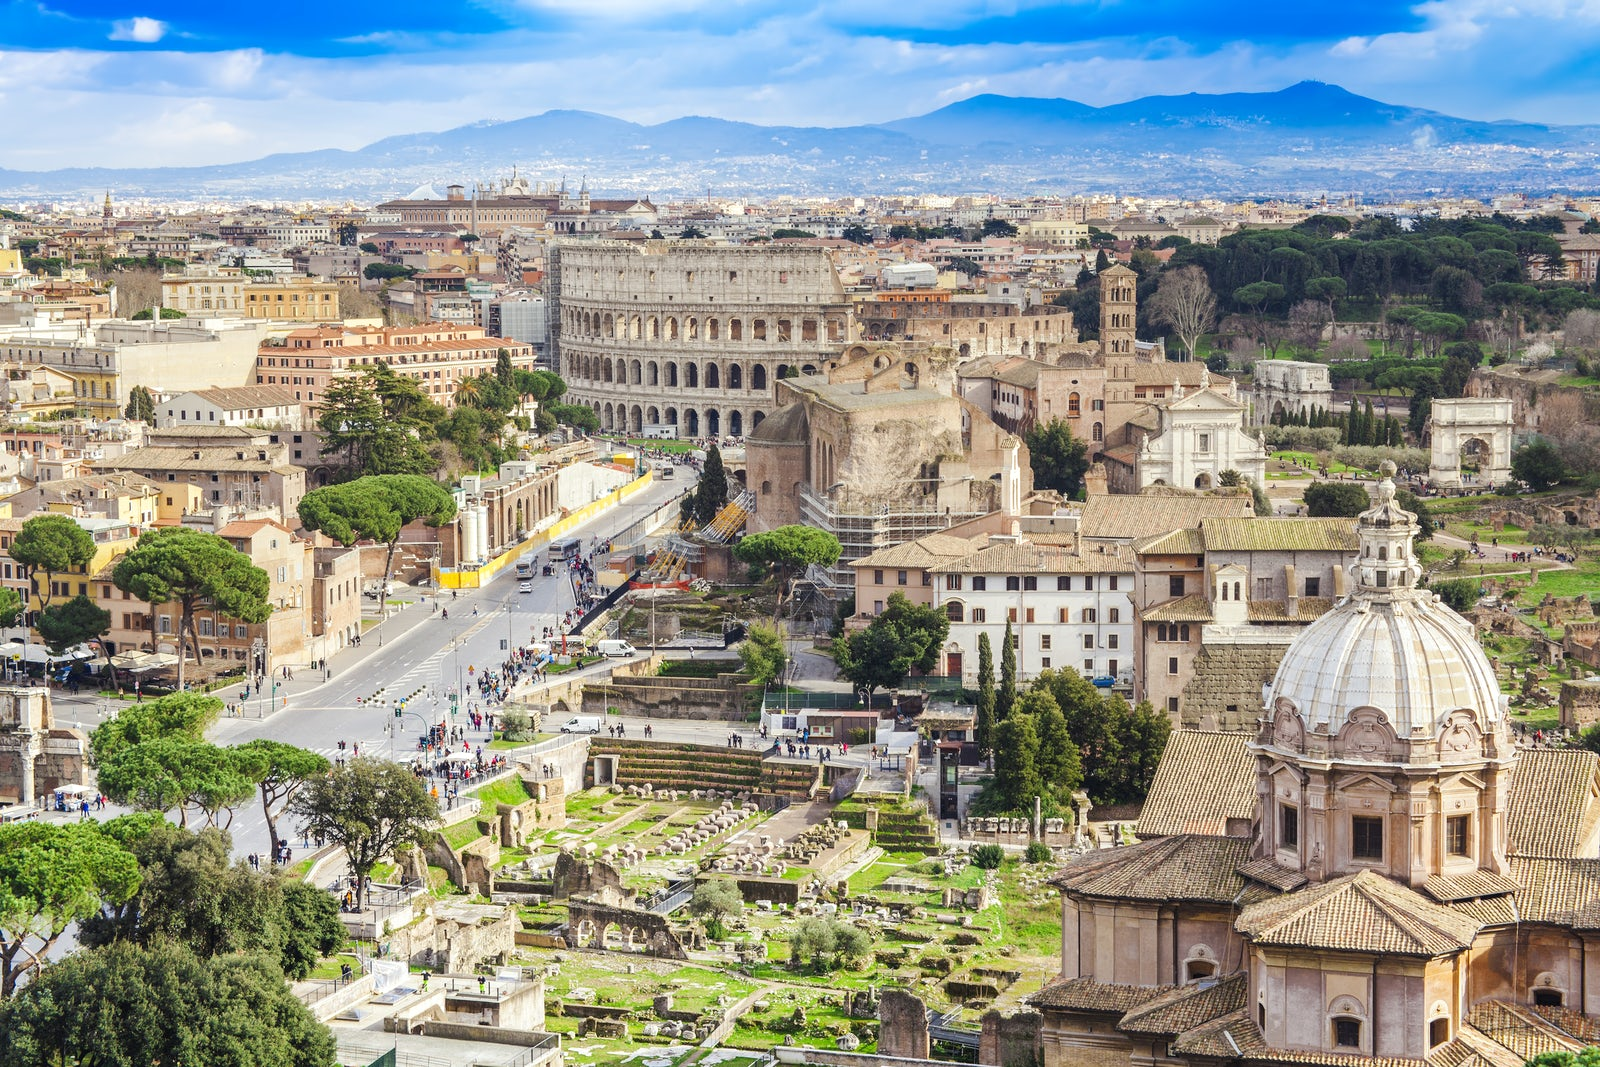 !i18n:it:data.cities:rome.picture.caption